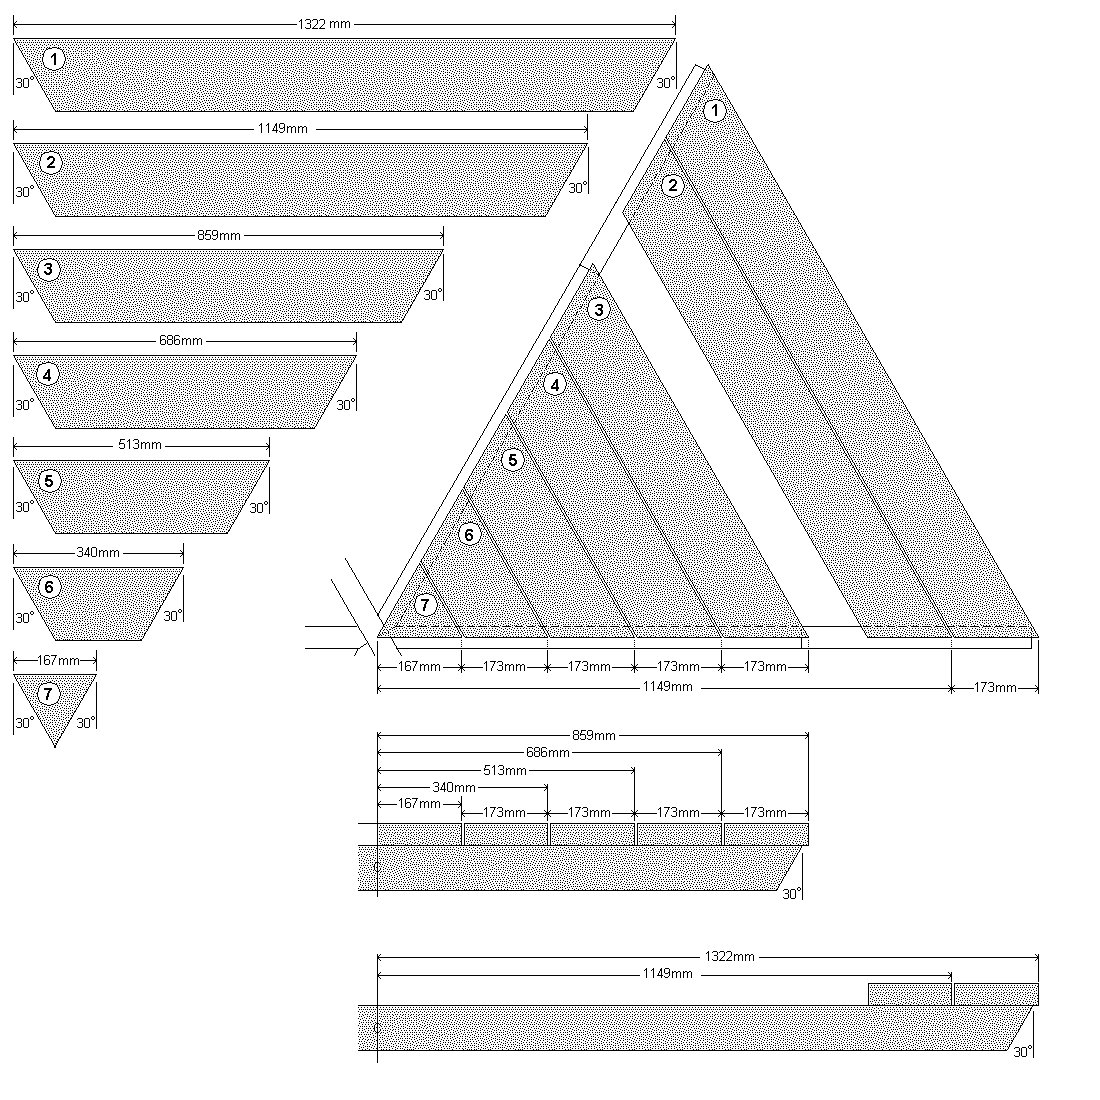 Hexagonal Table With Seating Plan : Table and seat board cutting list and detail - Metric Version